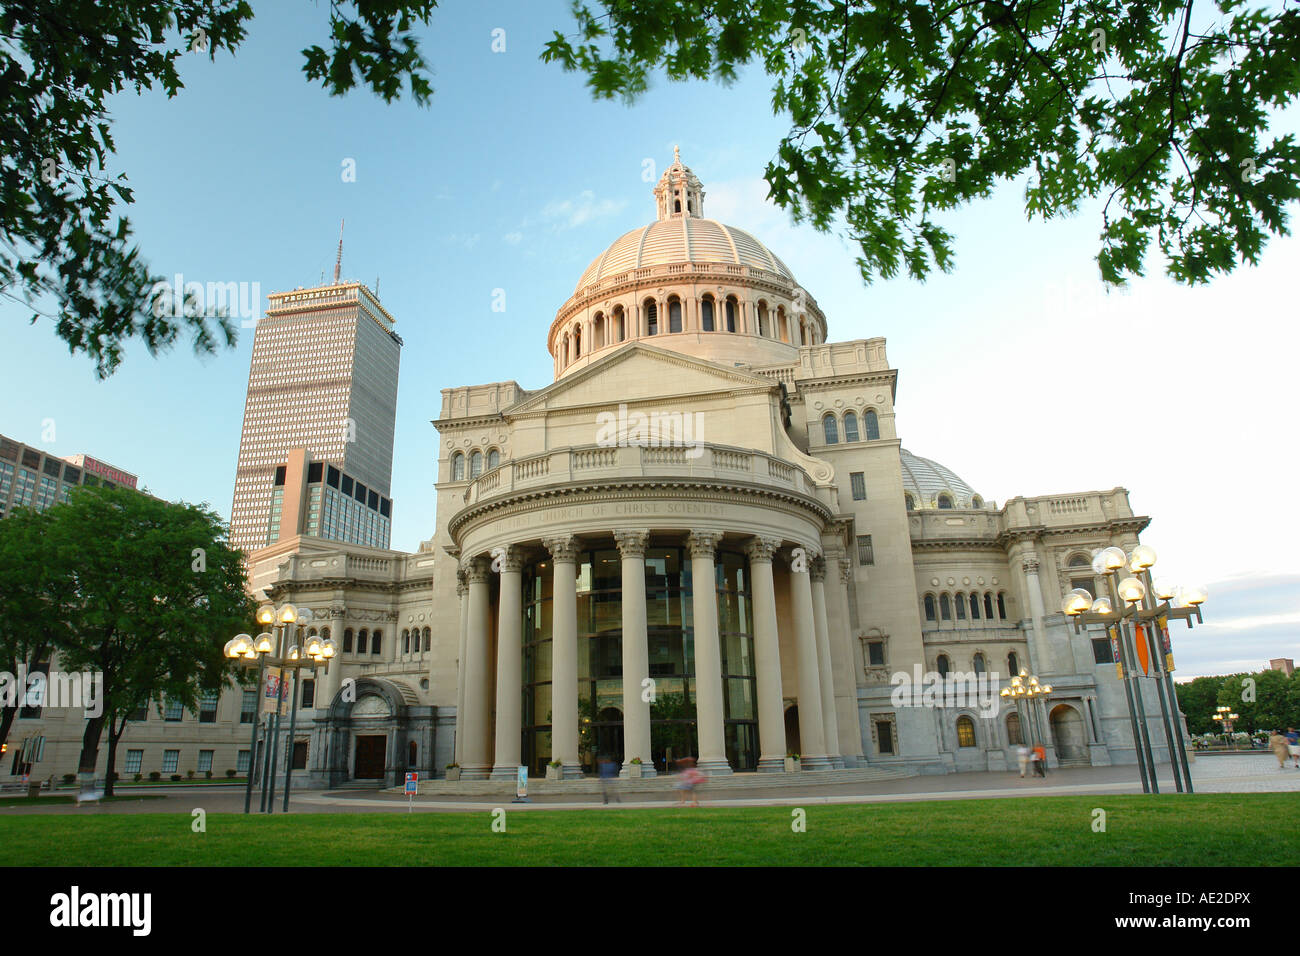 AJD59022, Boston, MA, Massachusetts, Downtown, The First Church of Christian Scientist - Stock Image